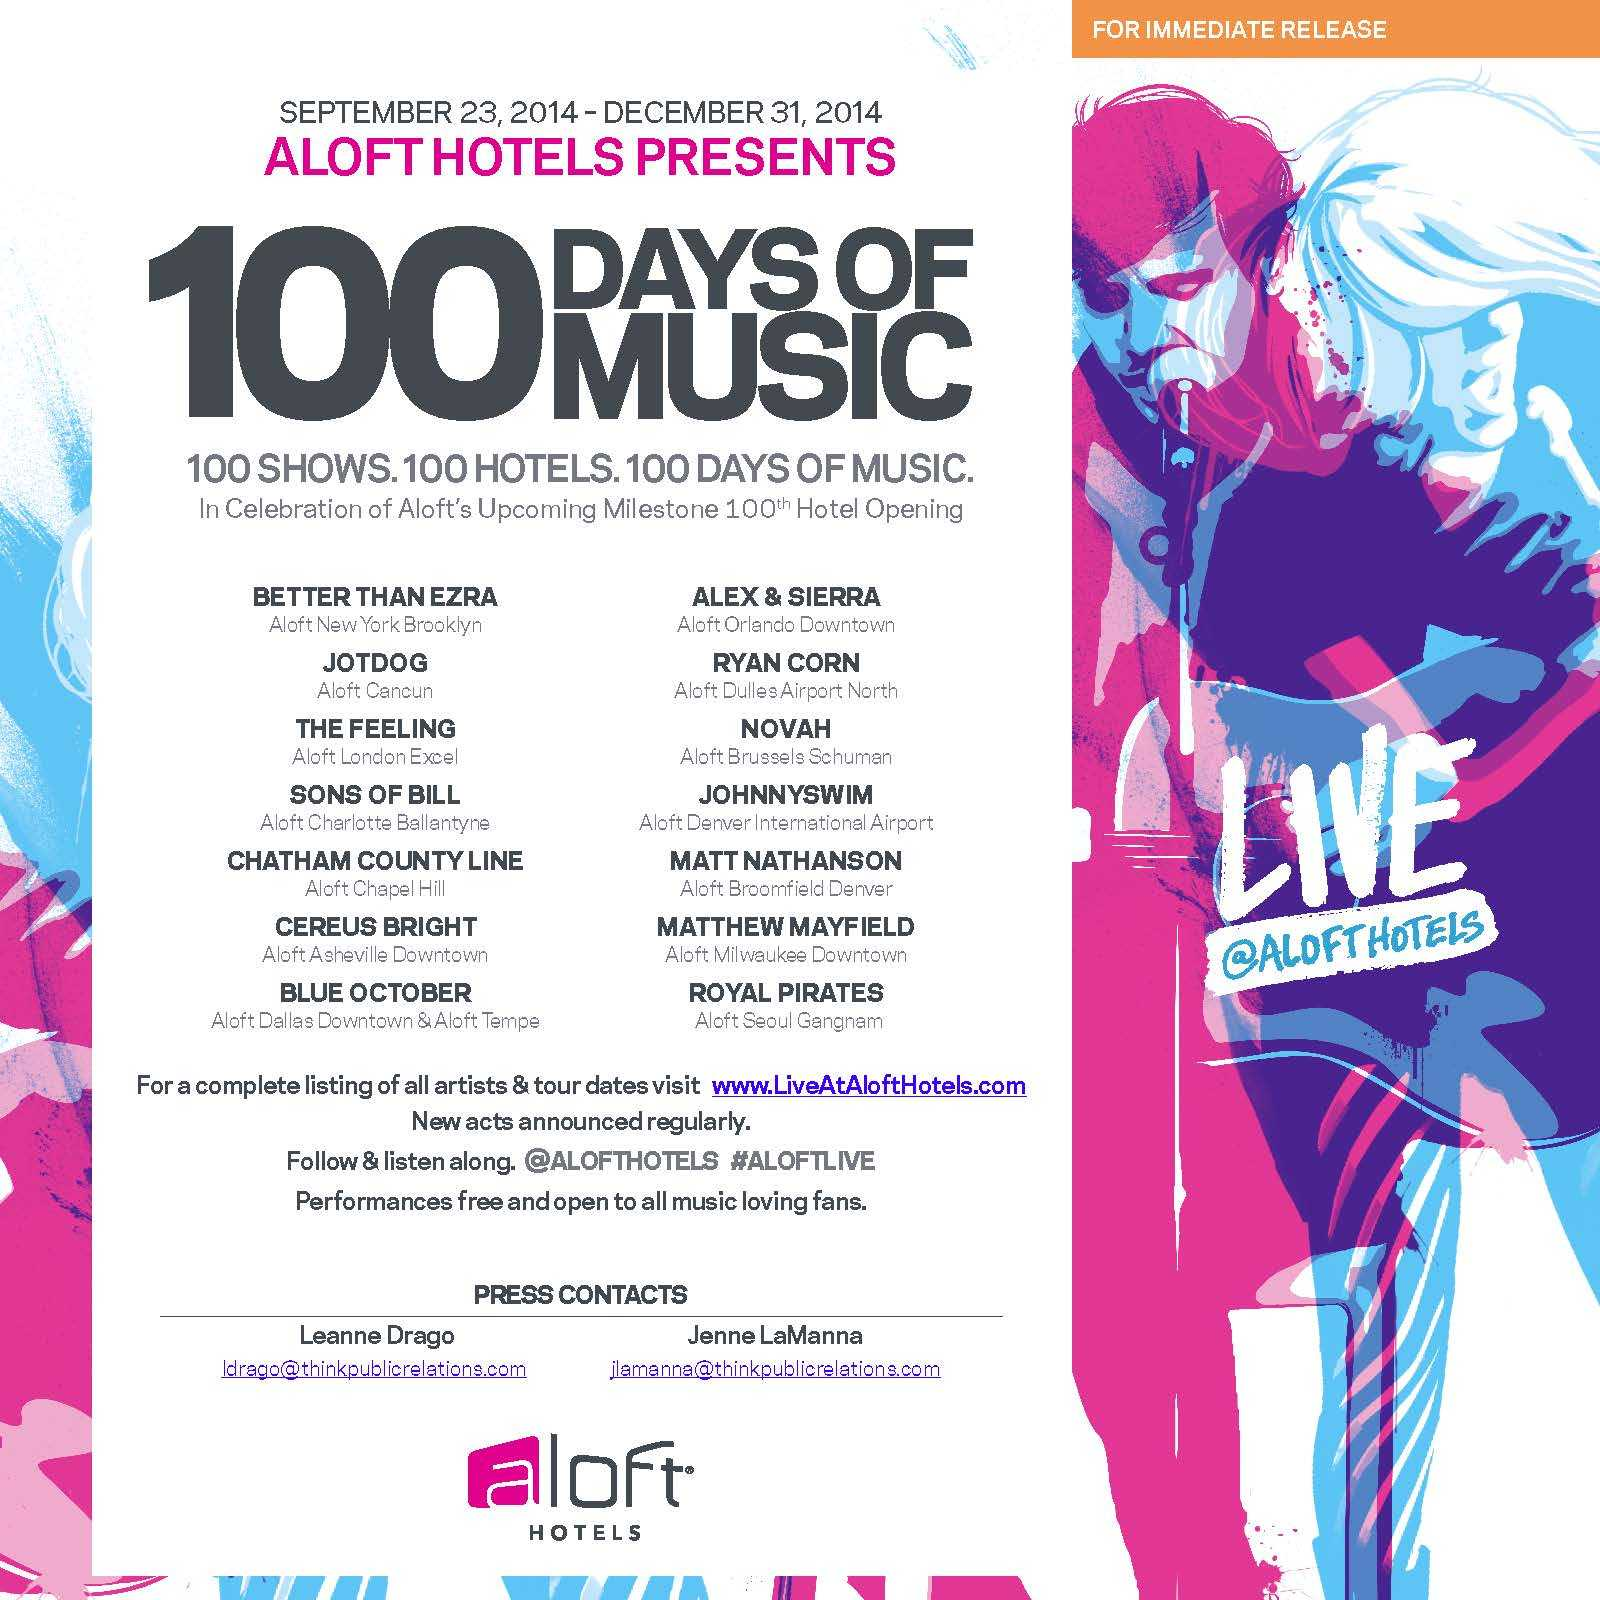 Aloft Hotels Presents 100 Days of Music | Business Wire